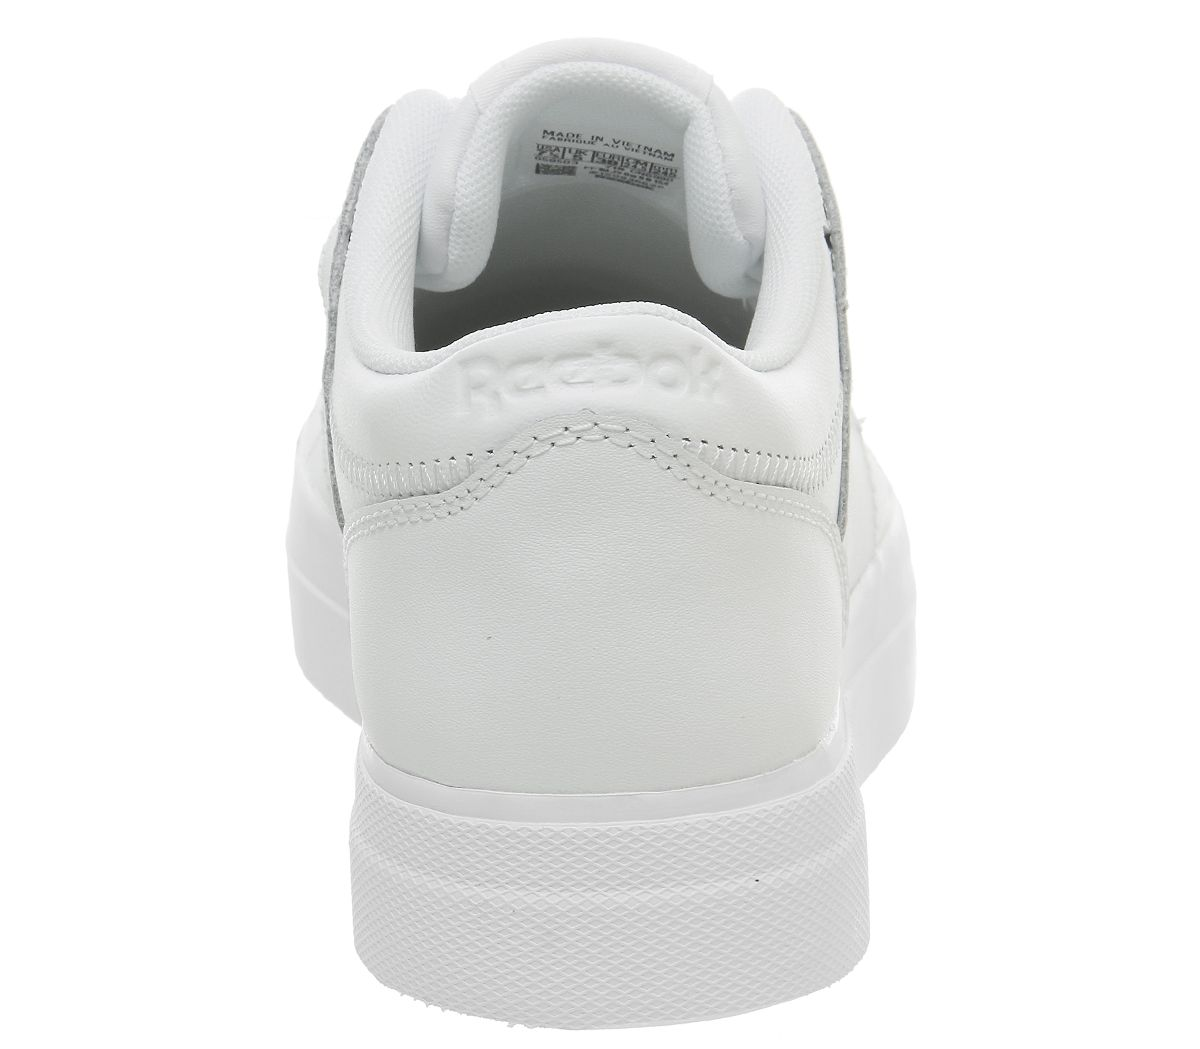 72f8fef0e56dc Reebok Workout Lo Fvs Trainers Basic White Skull Grey - Hers trainers